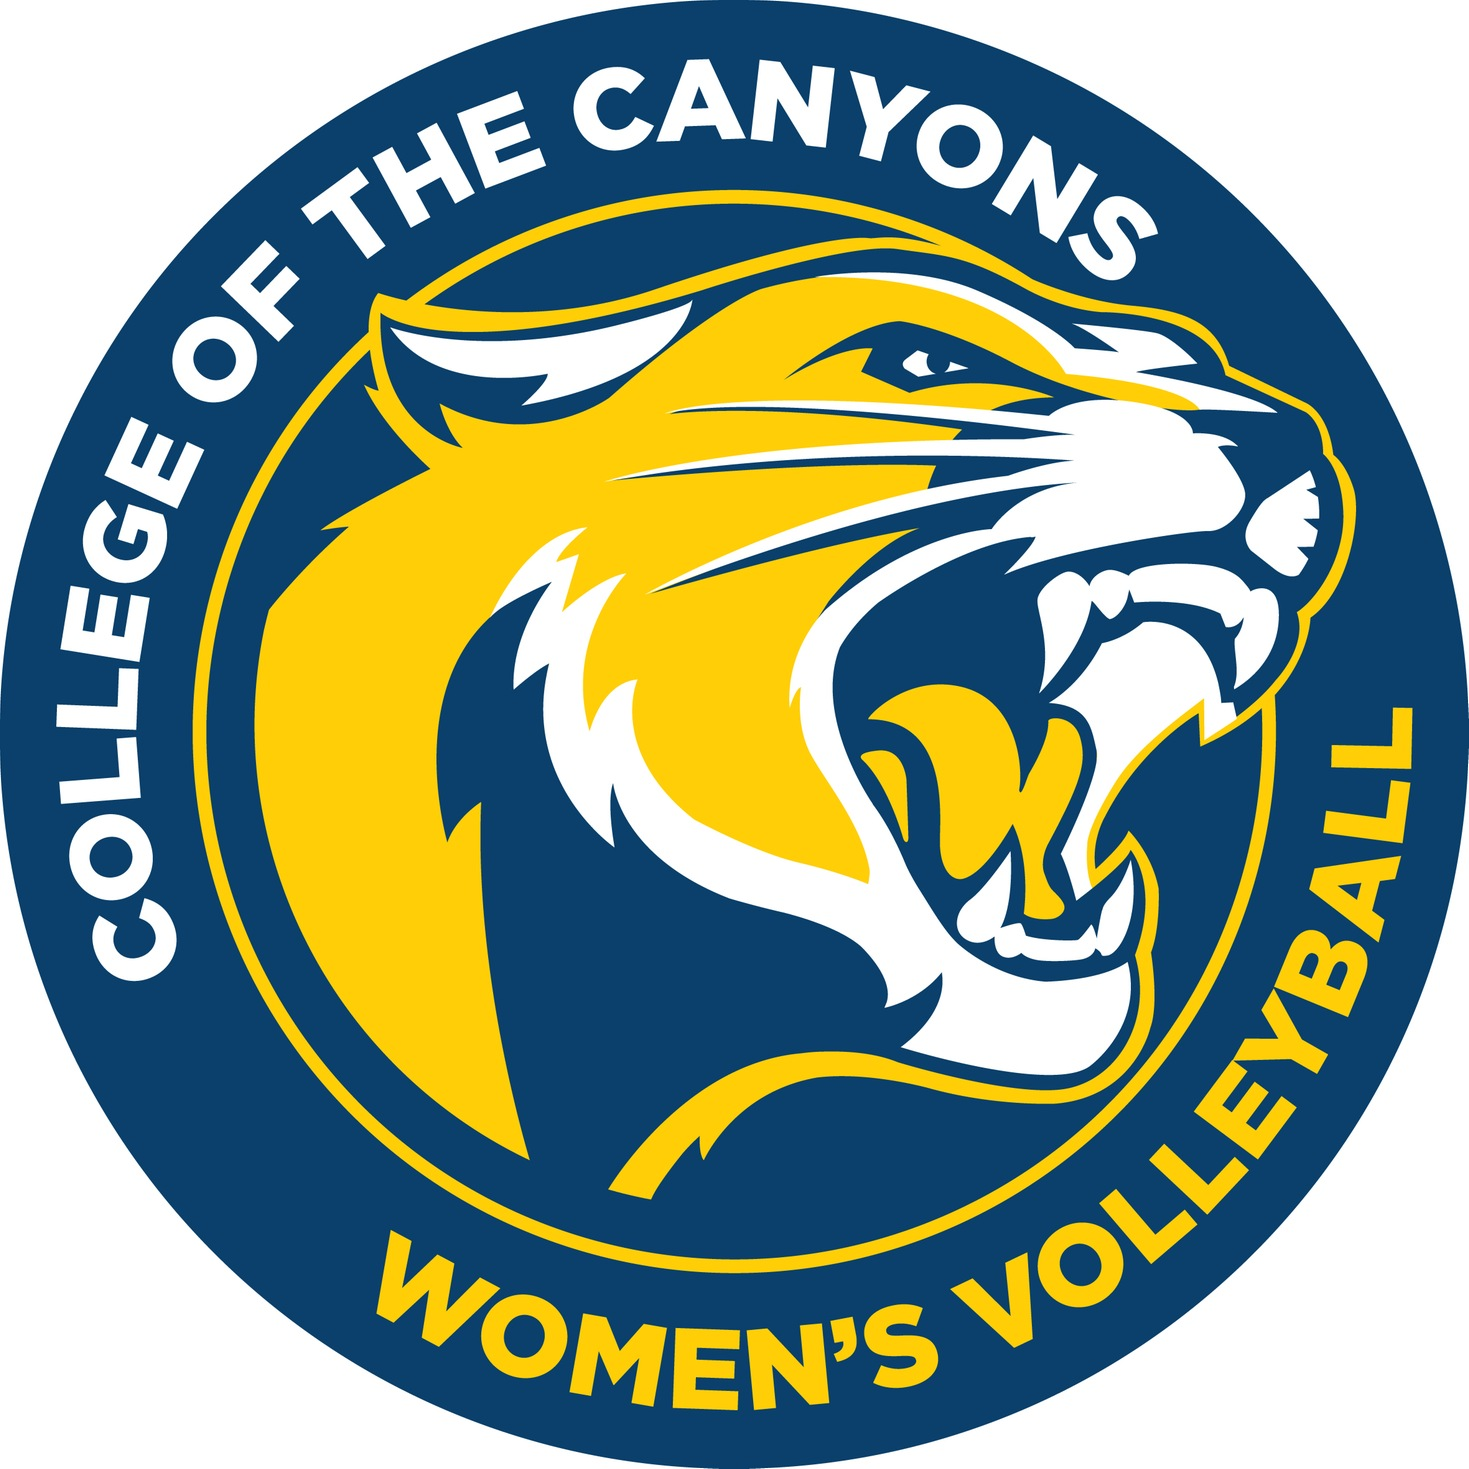 College of the Canyons women's volleyball logo.